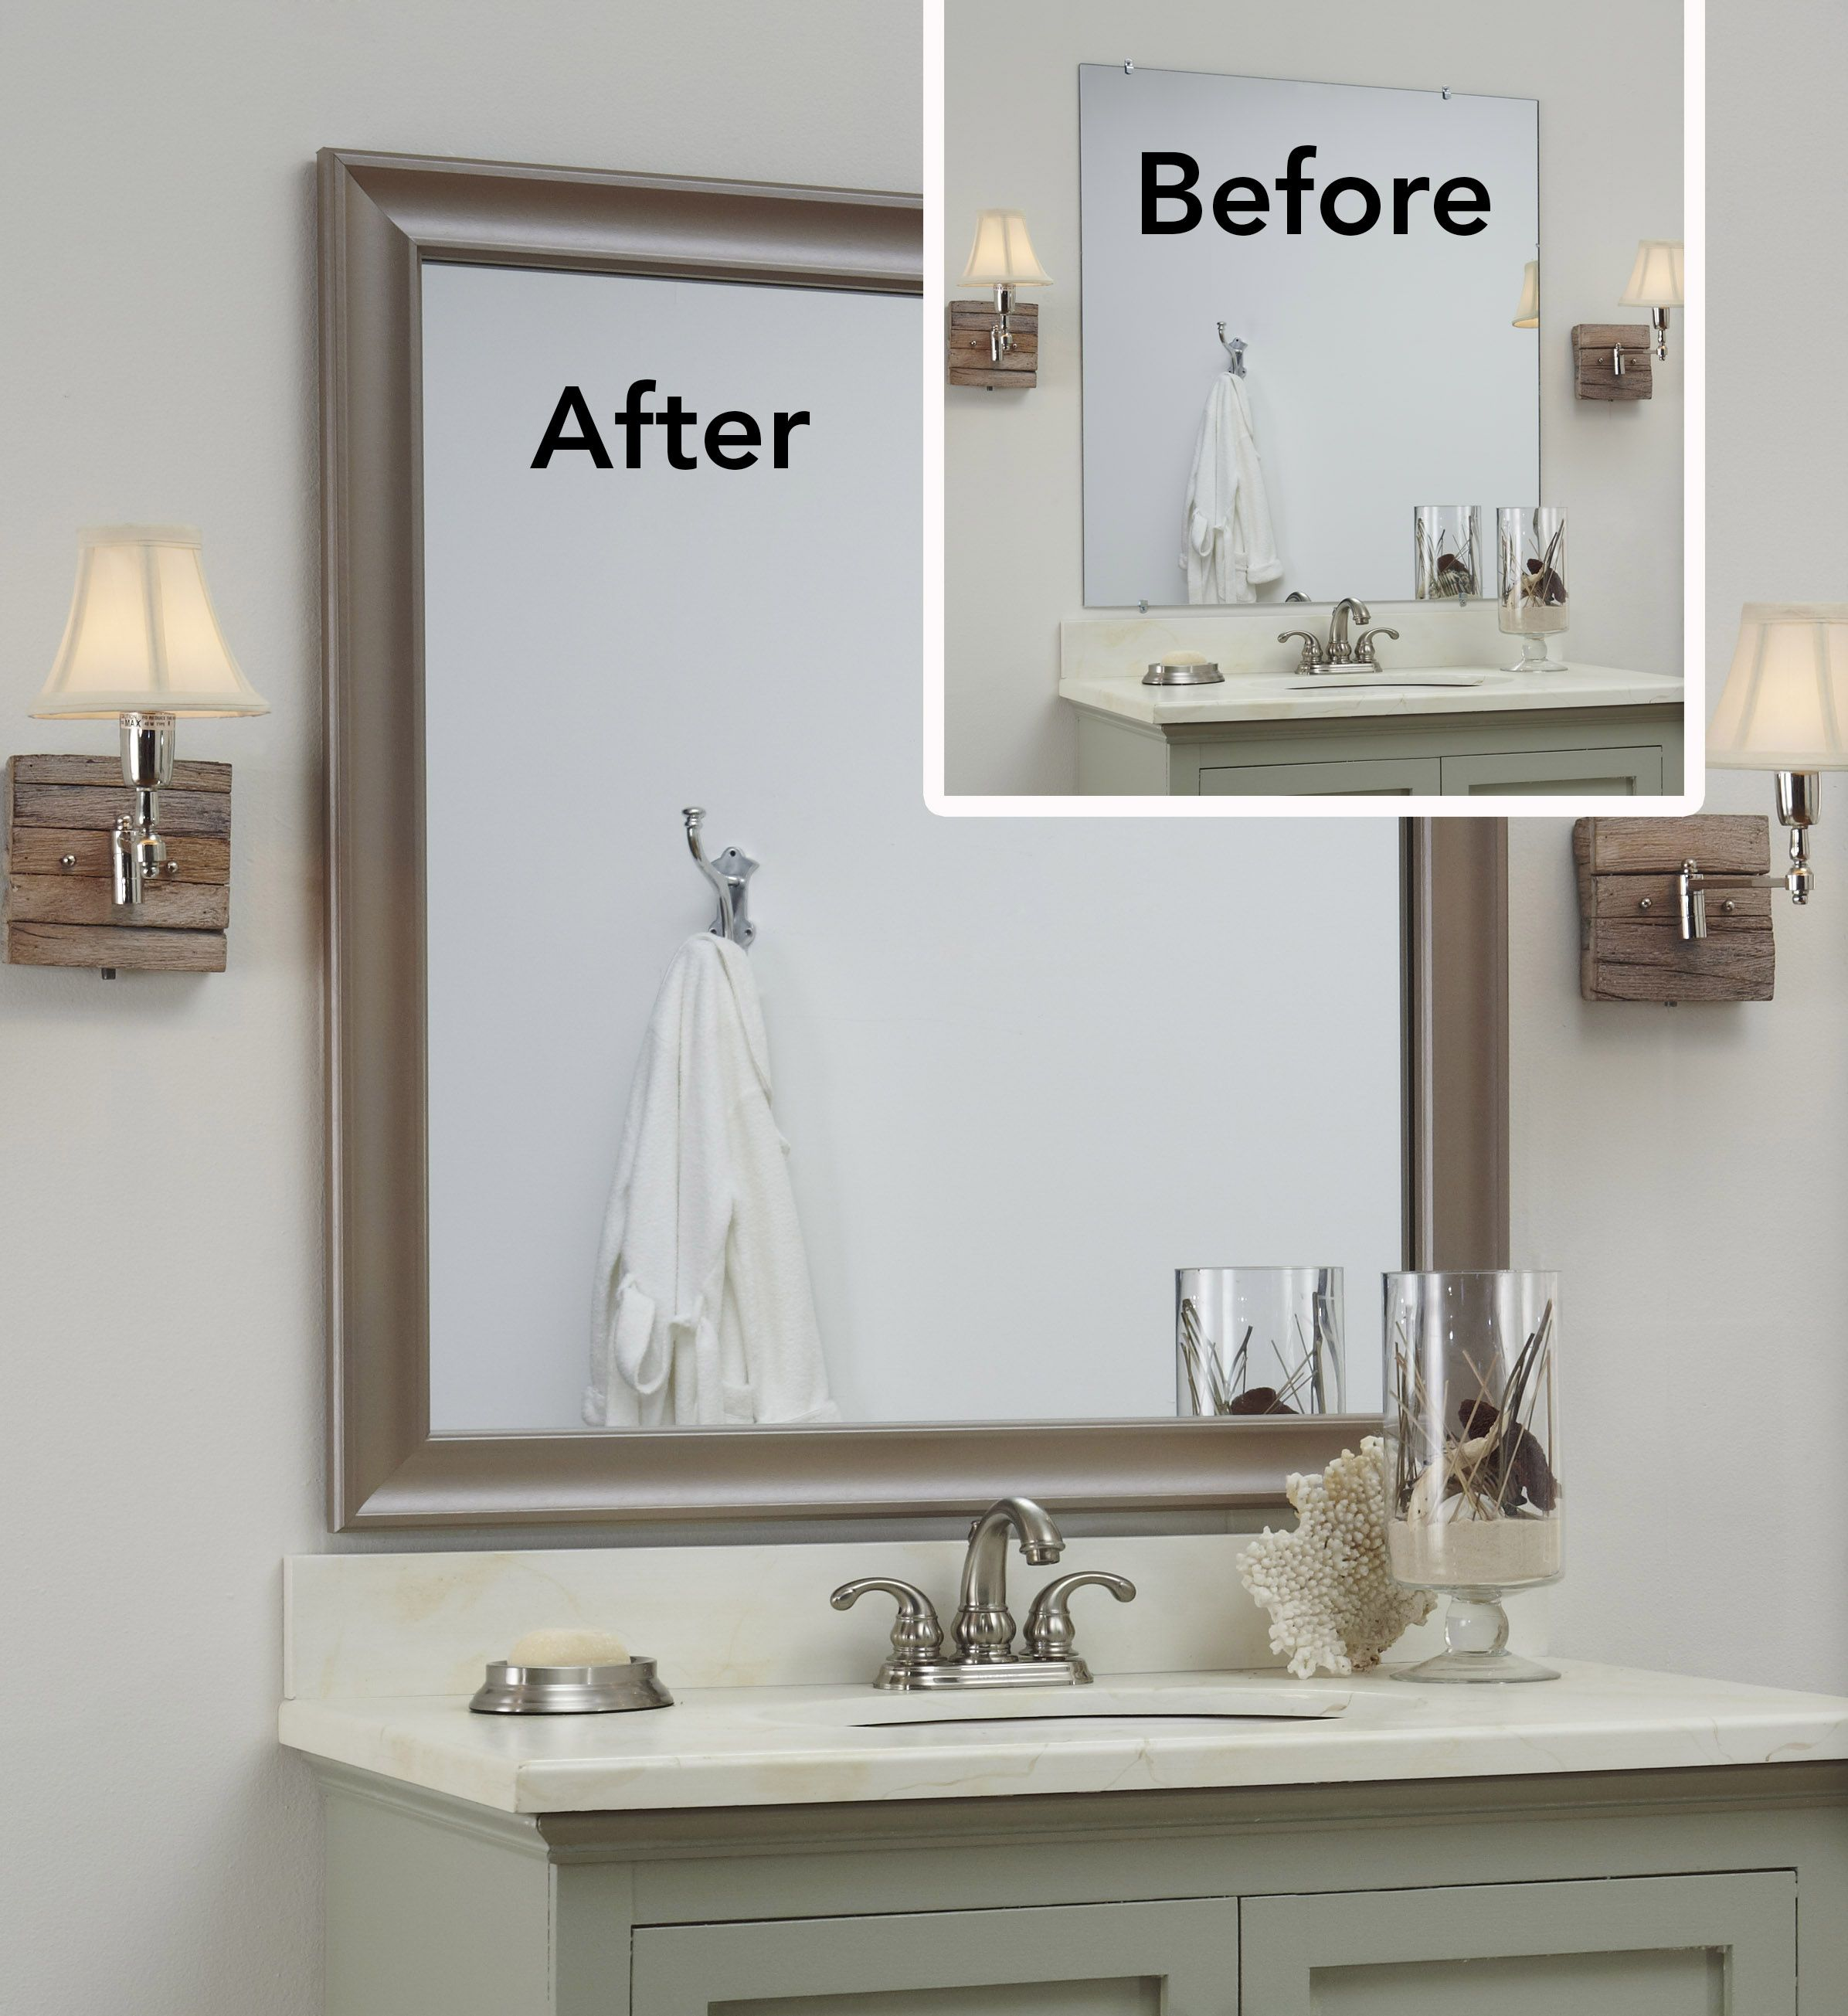 The before is a bare plate glass mirror the after a